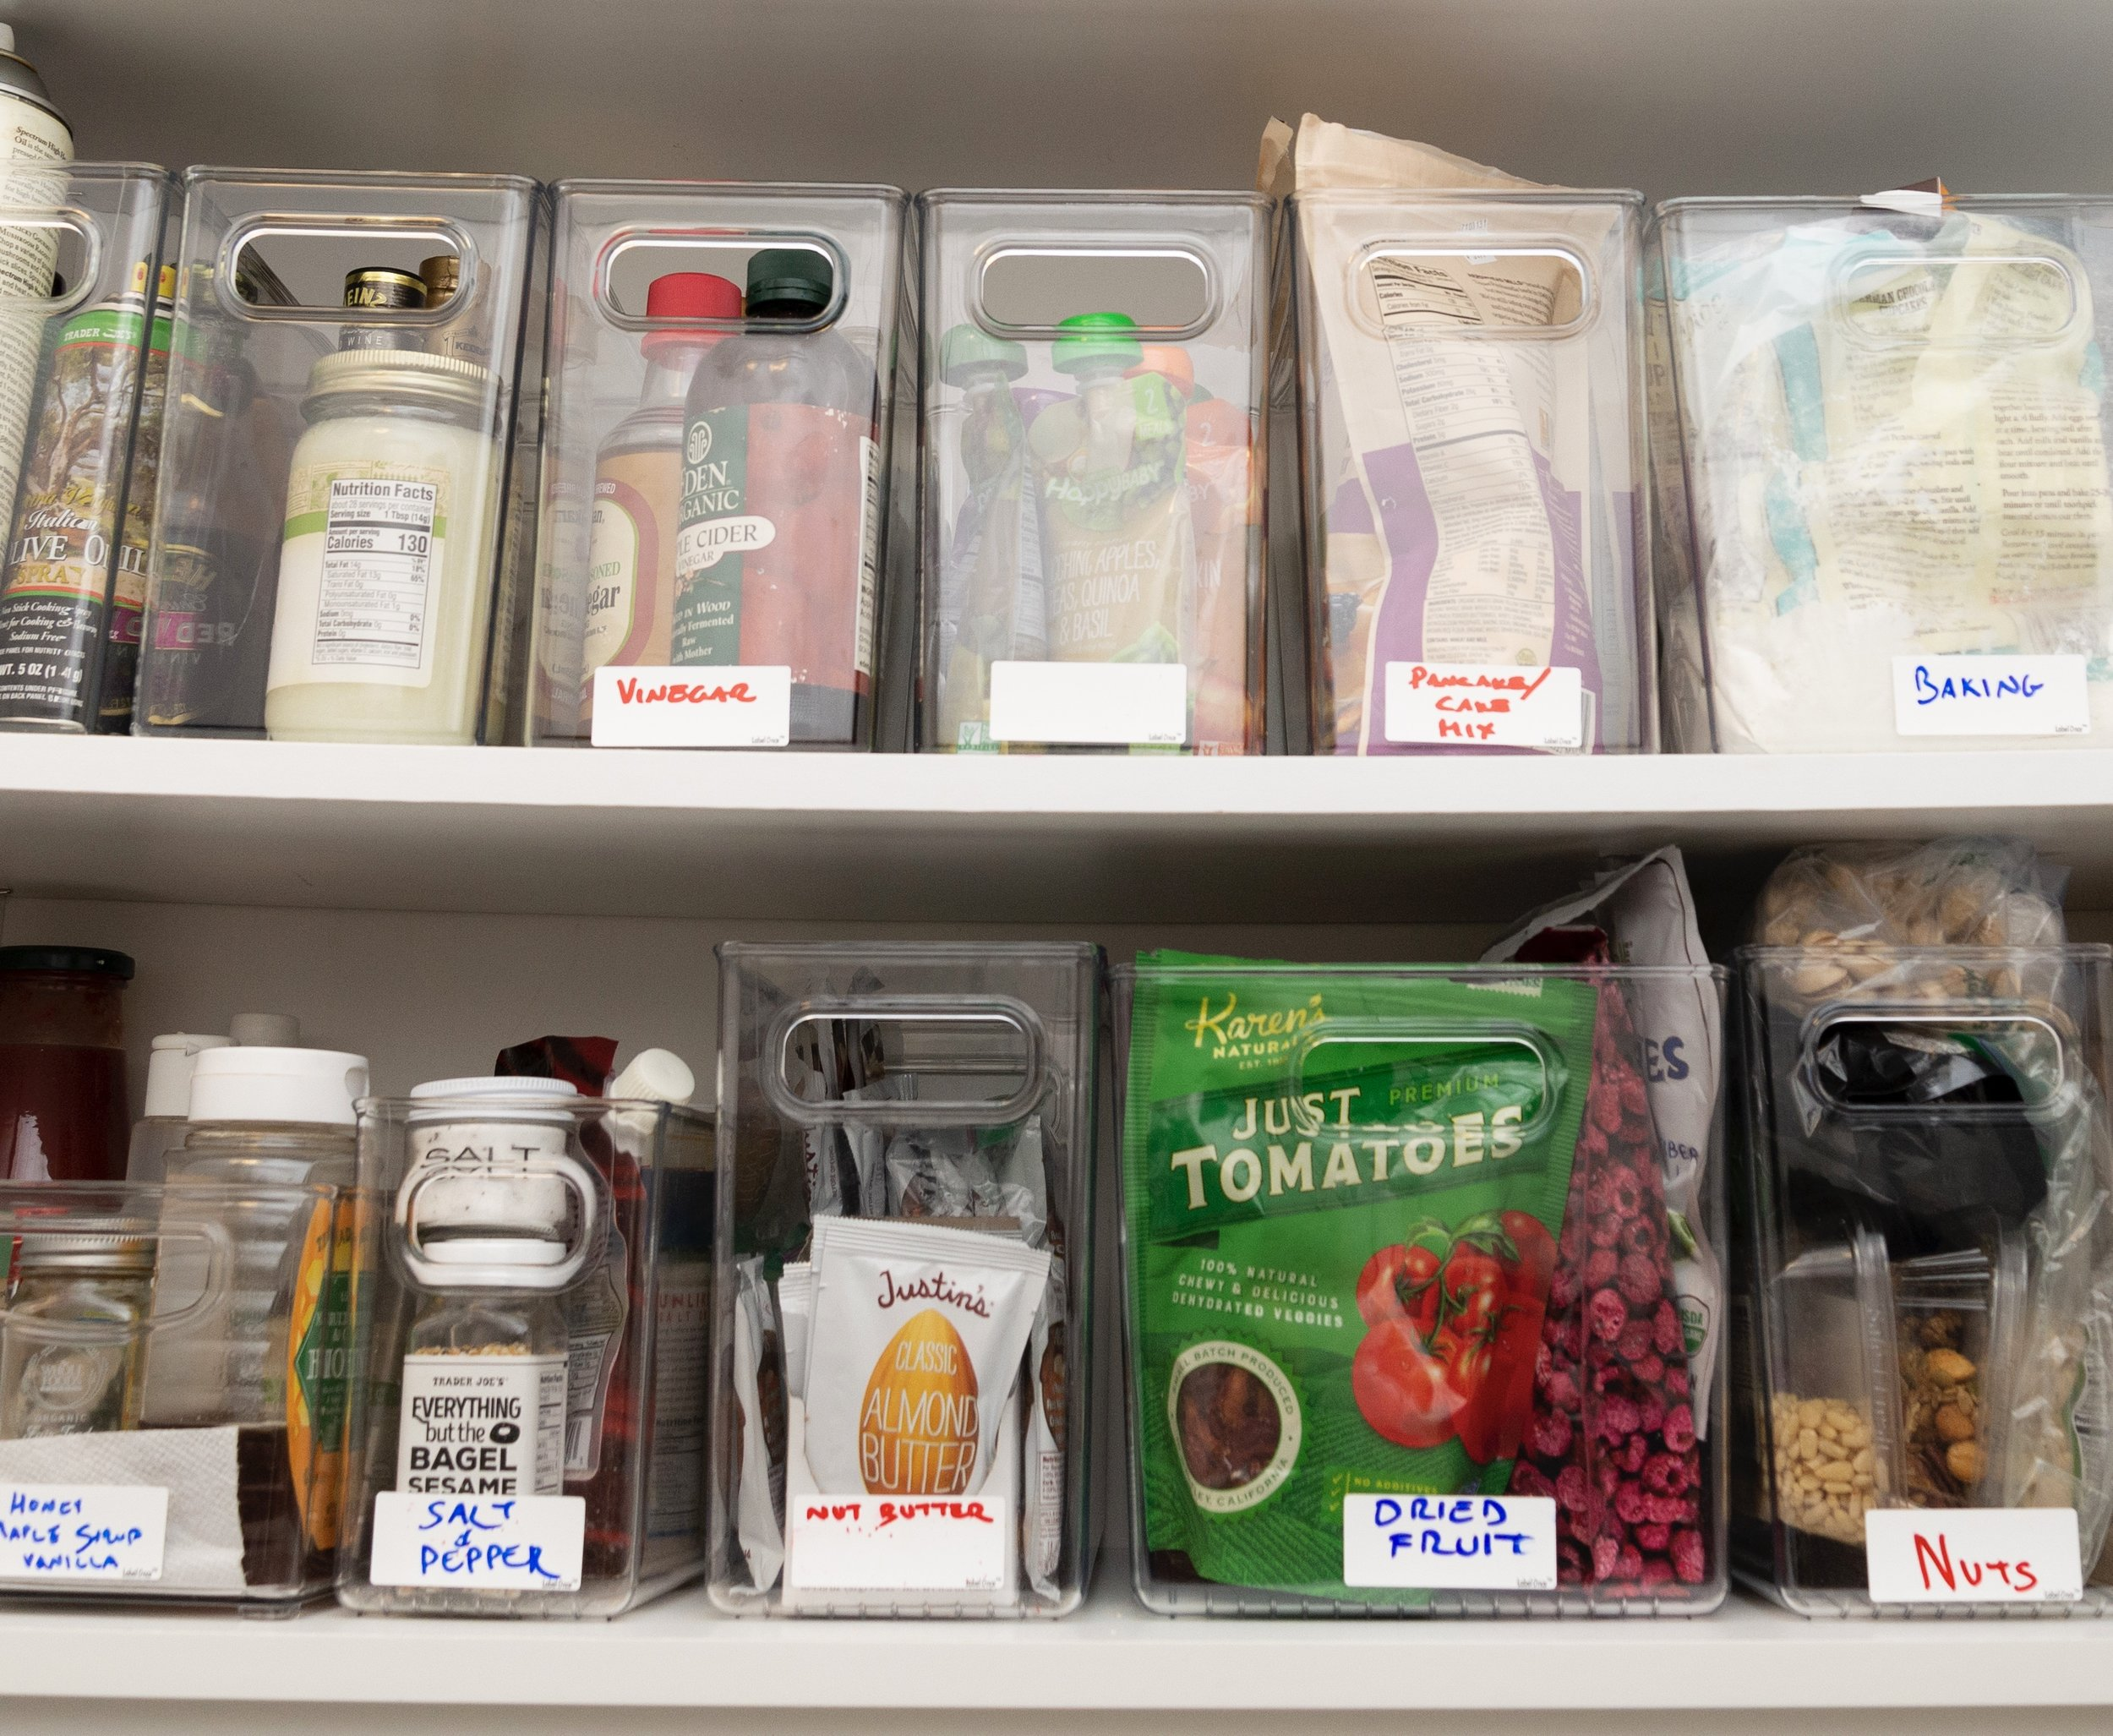 Miriam's food cupboard. Miriam likes to label the containers (and lots of other things) with  erasable labels  to make it easy to reorganize and repurpose containers.  These labels  are dishwasher safe, so can be used to label and date food containers too.